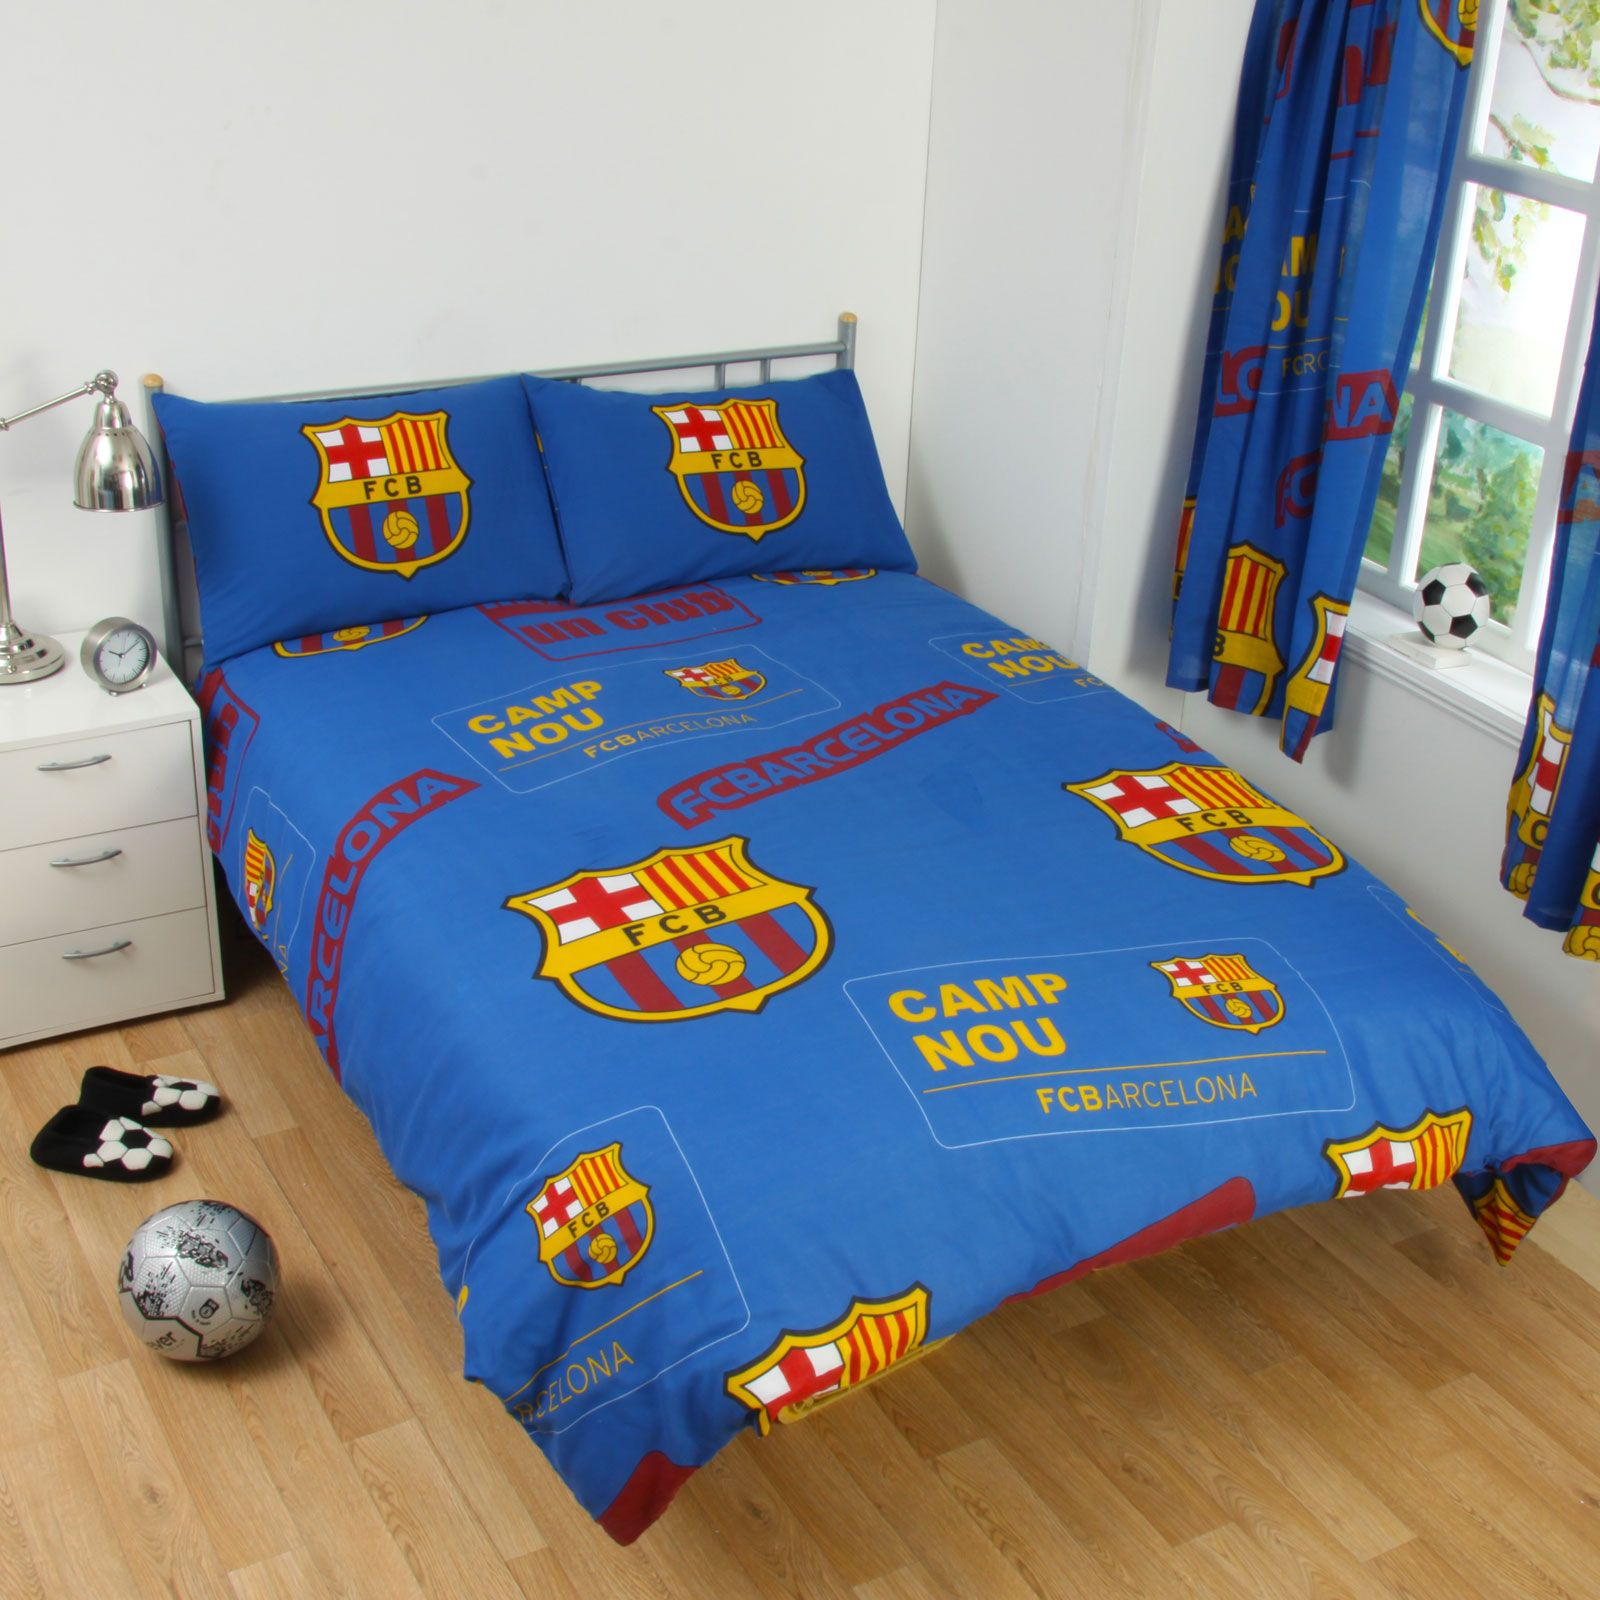 Chelsea Bedroom Chelsea Bedroom Bedside Extension For Bed: OFFICIAL FOOTBALL CLUB DUVET COVER SETS